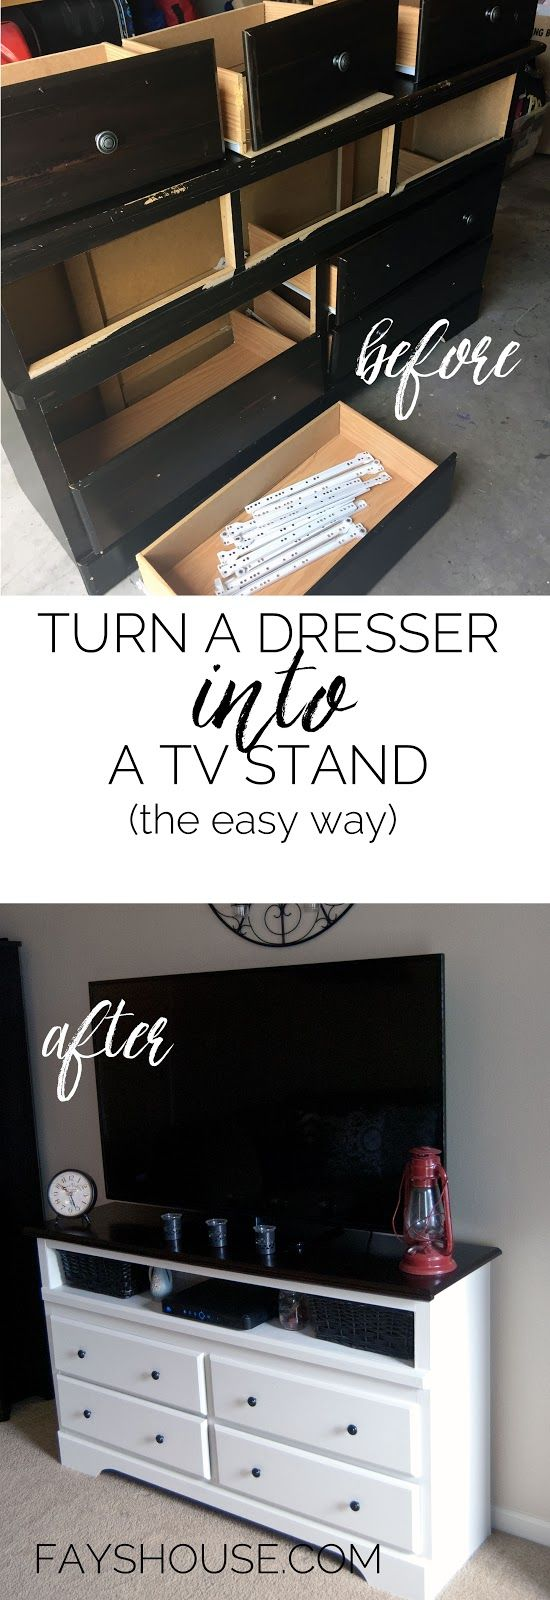 Fays House: Turn a dresser into a tv stand: the easy way